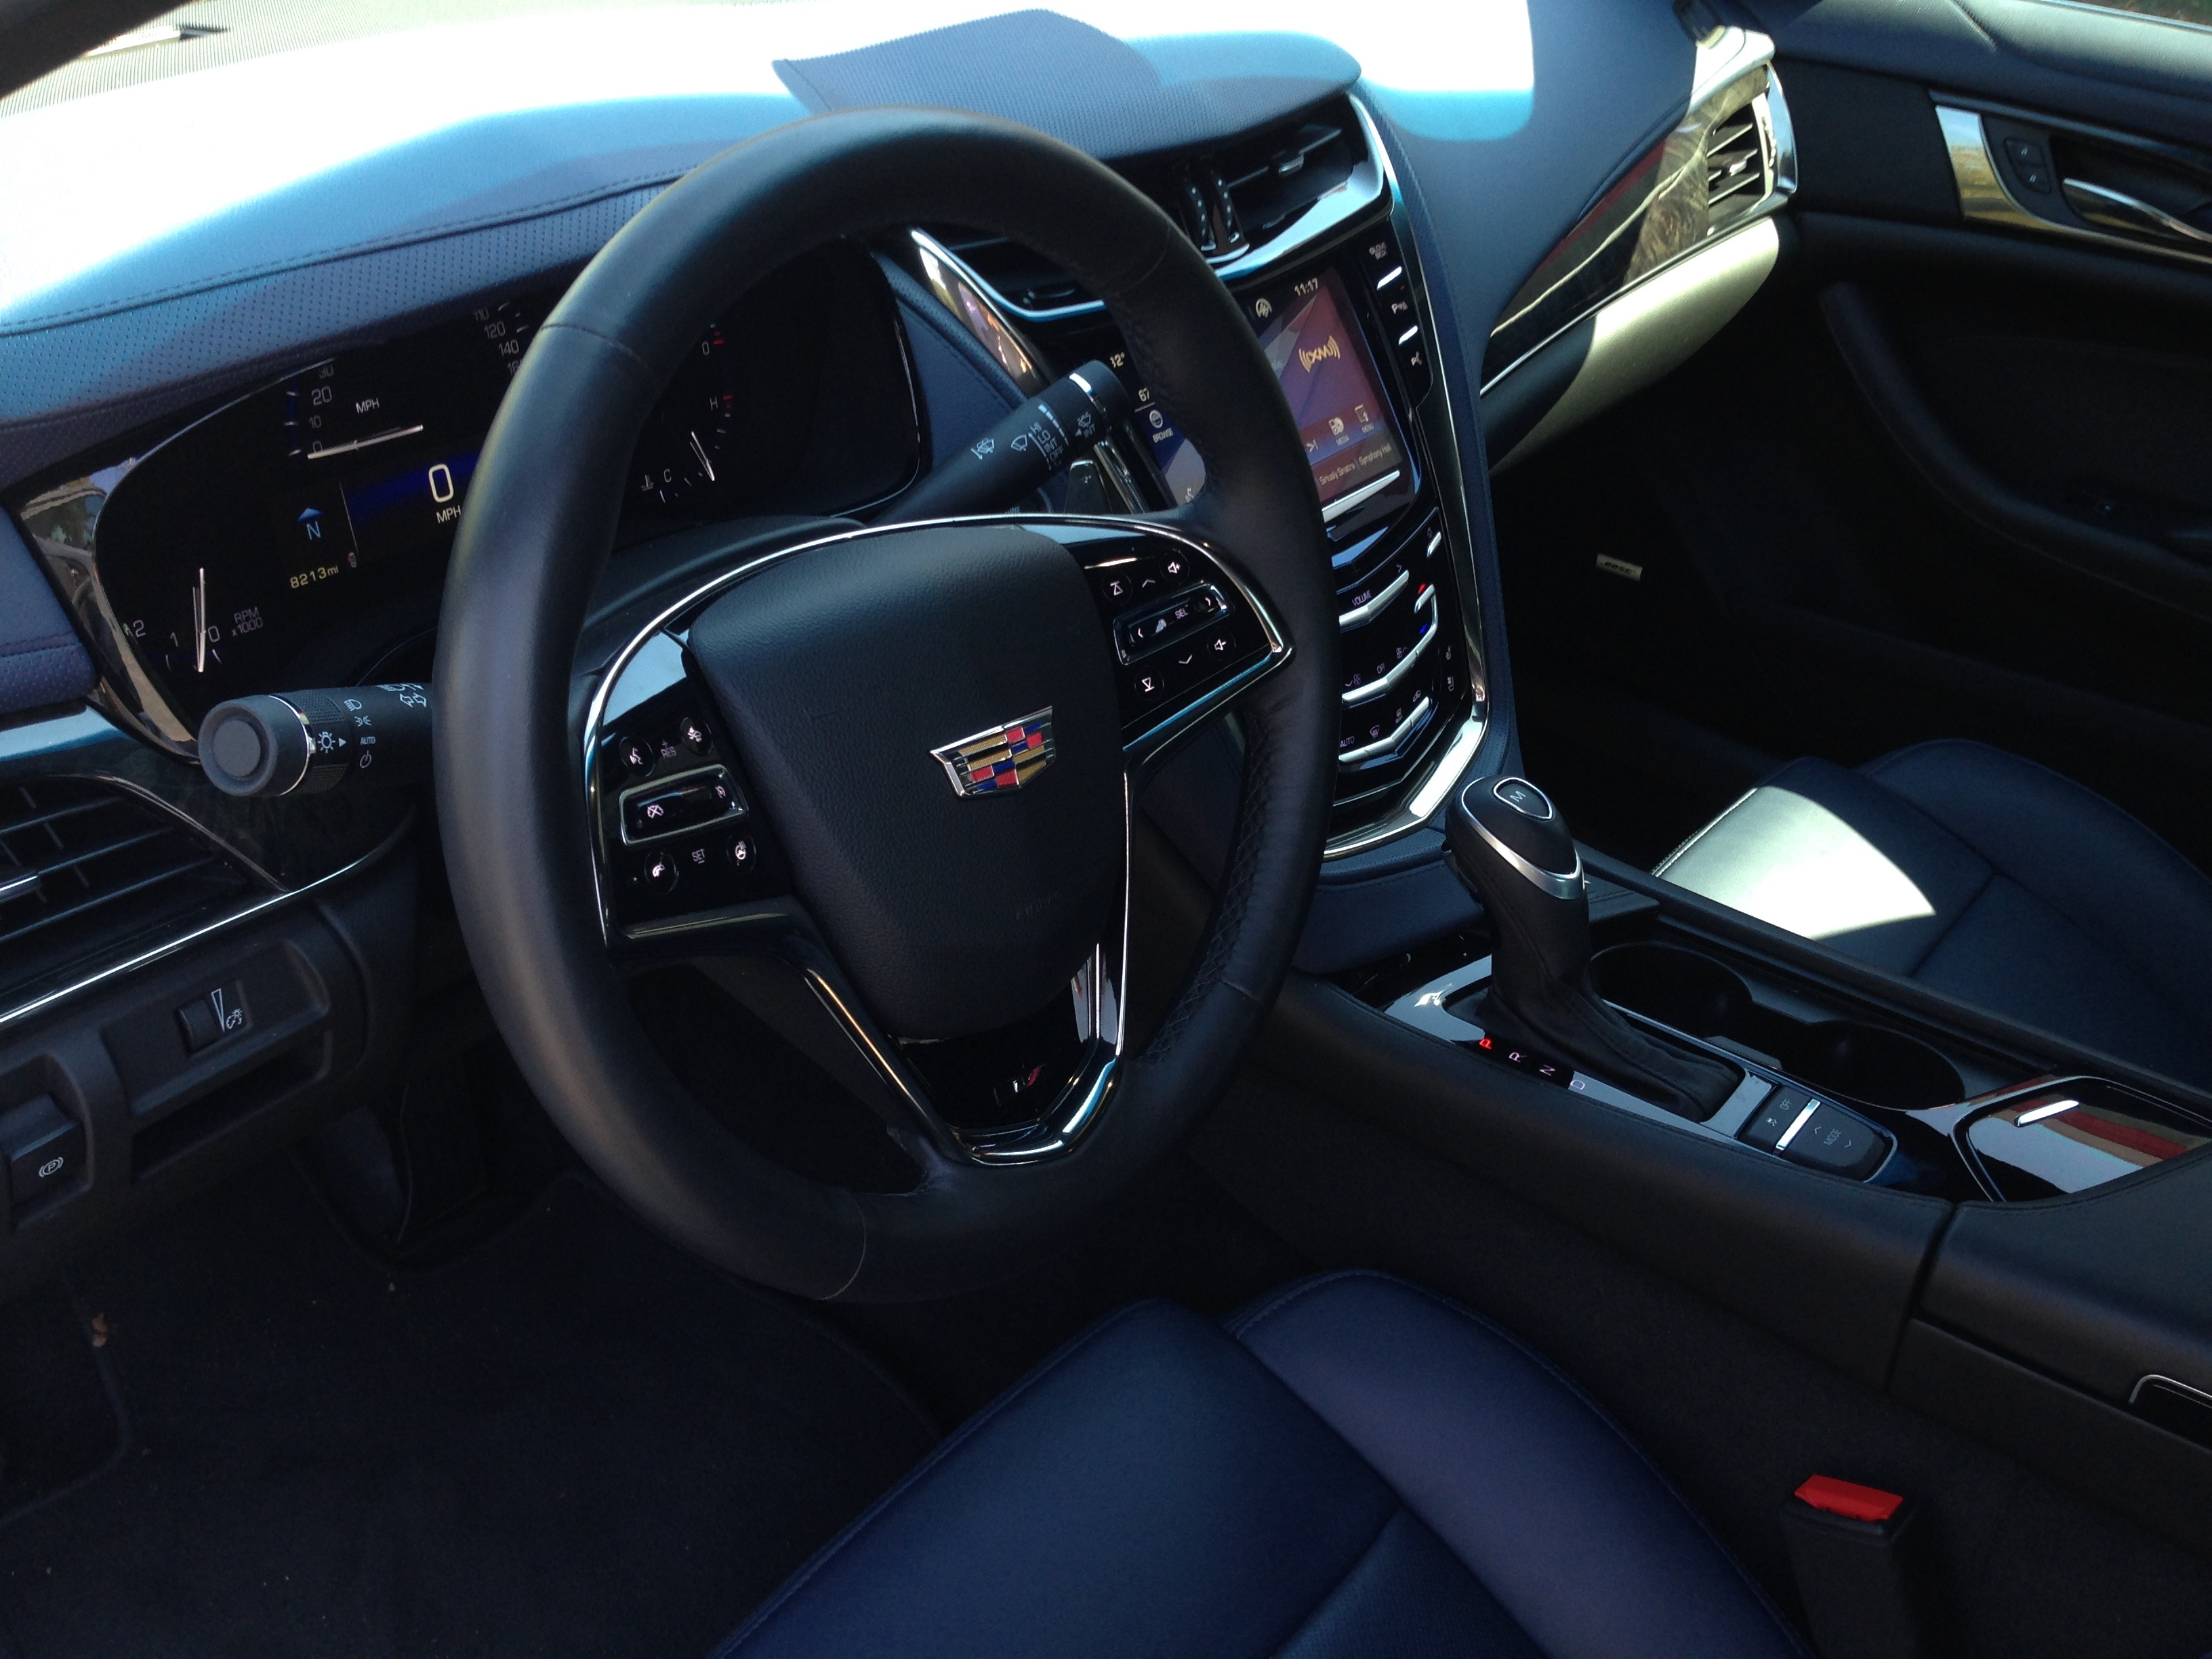 CTS interior is well done.